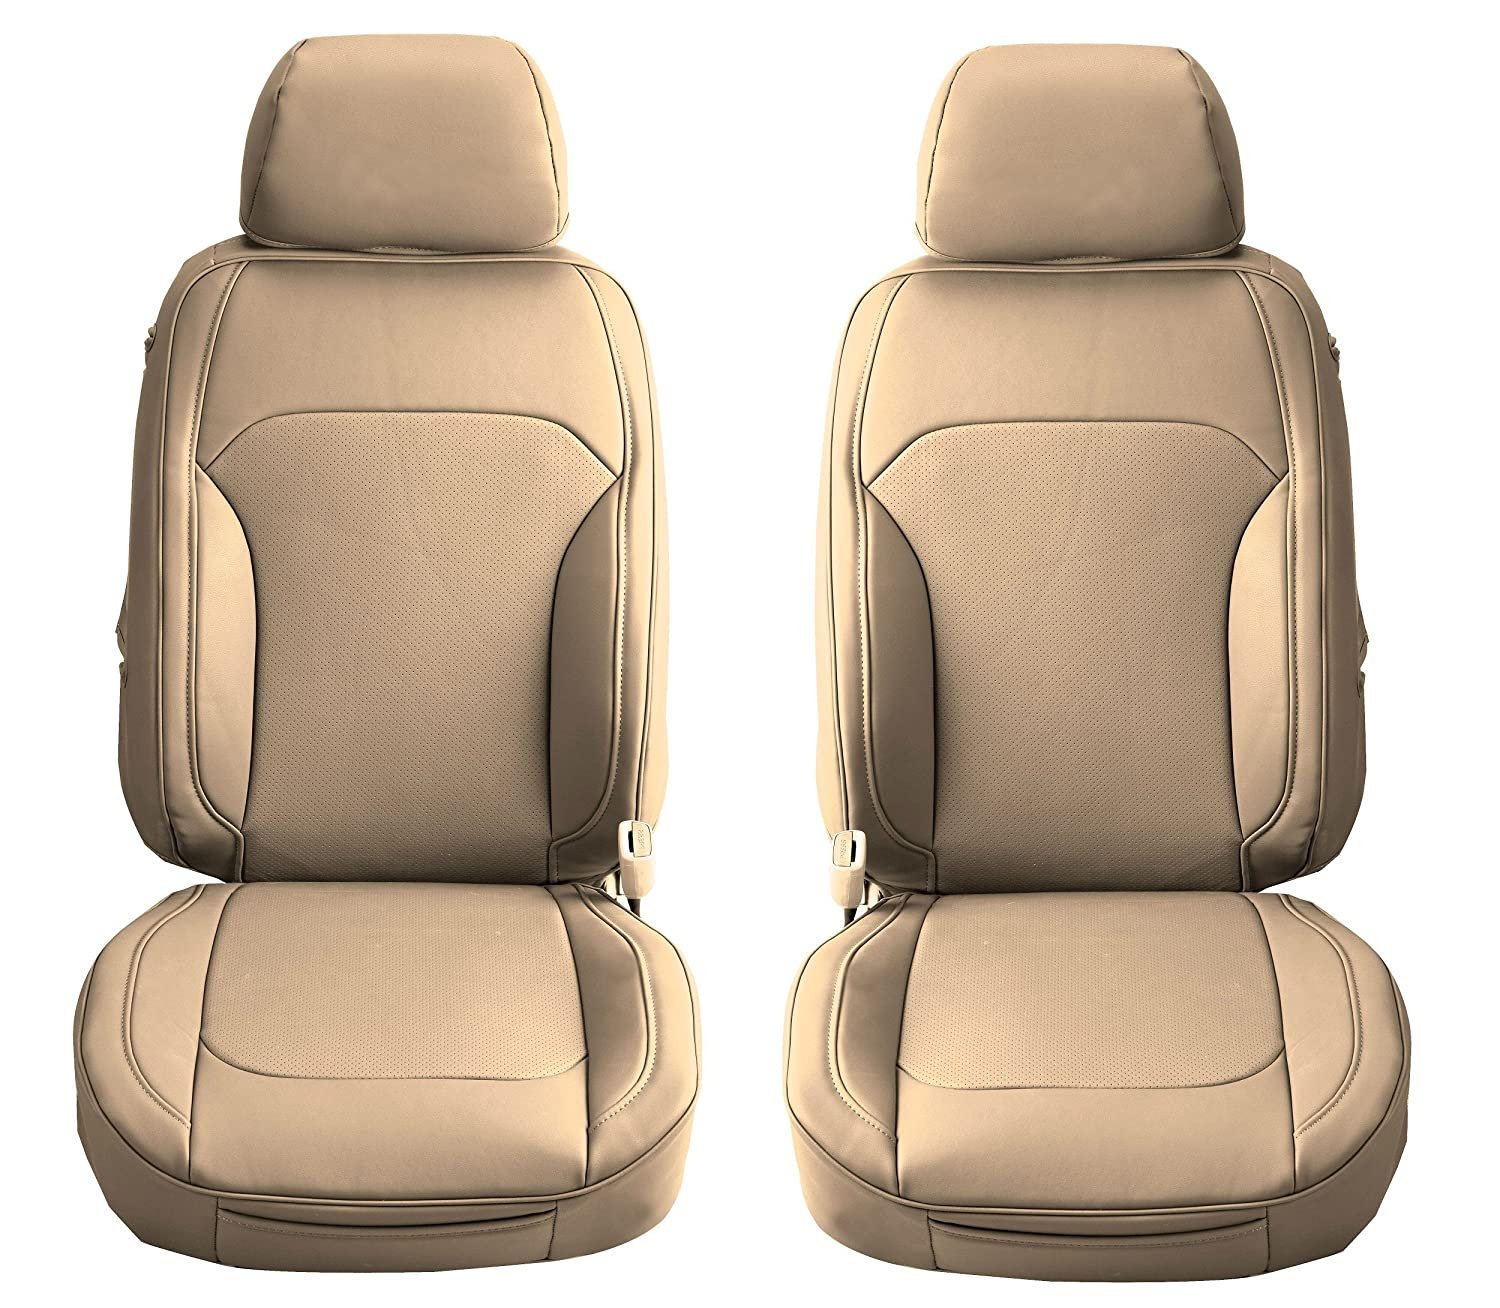 Aegis cover SPVCTC03 Sand Semi Custom PVC Leather Seat Cover A Pair for Toyota Camry Front Seats 1 Pack